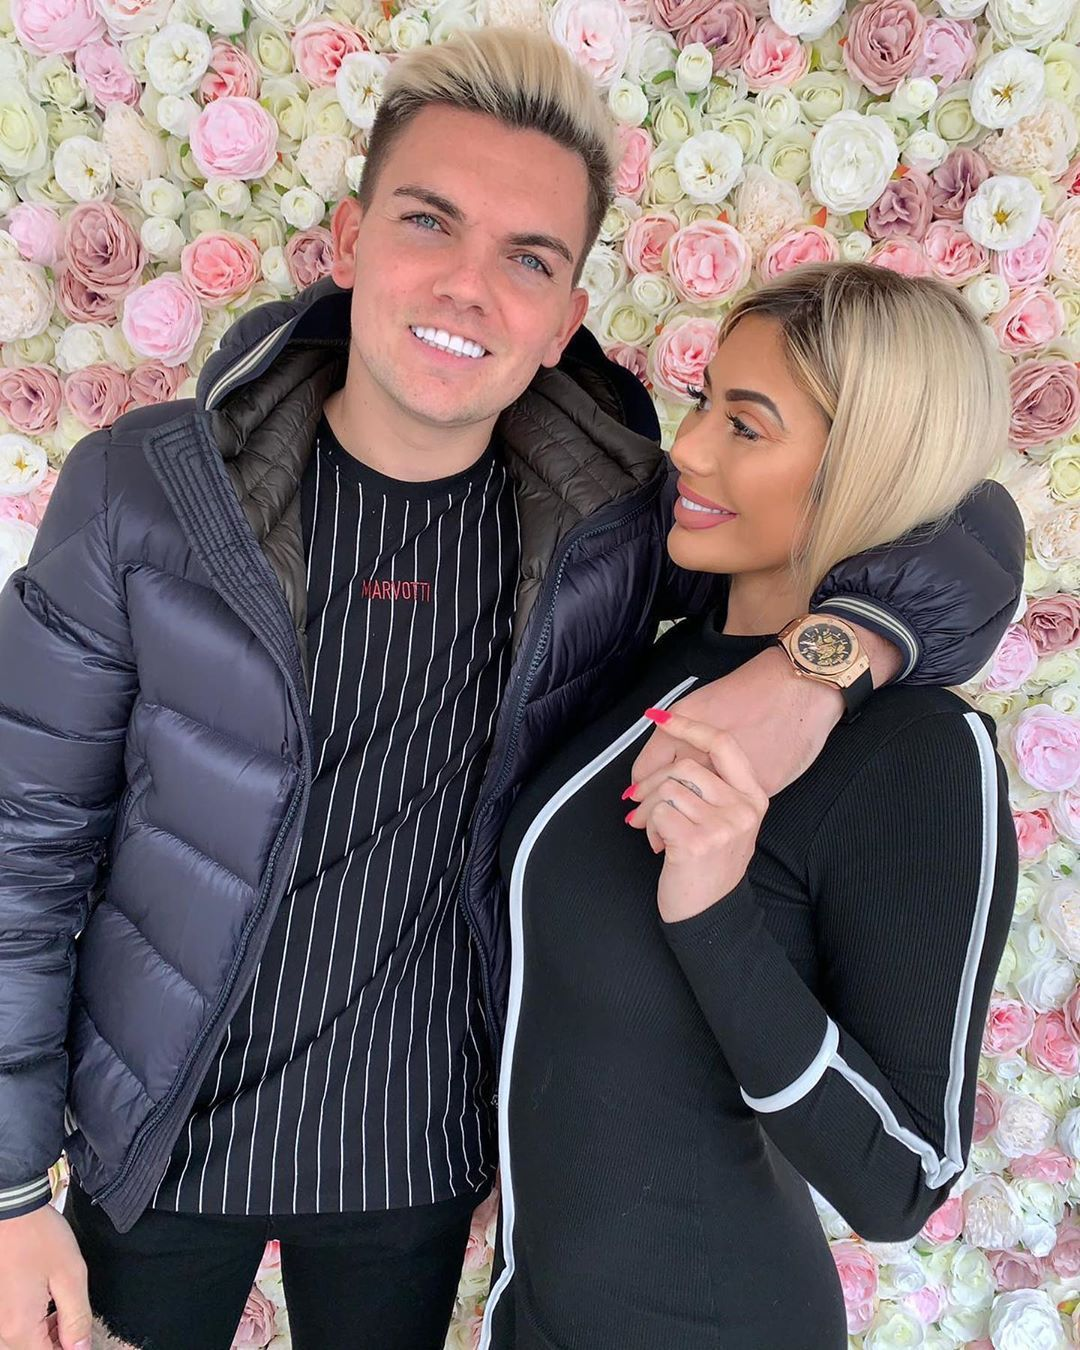 Image may contain: Chloe Ferry and Amber Davies, Chloe Ferry, Amber Davies, Sam Gowland, Instagram, what happened, drama, tea, argument, explained, together, split, cheating, Cushion, Plant, Blazer, Sleeve, Human, Person, Jacket, Coat, Apparel, Clothing